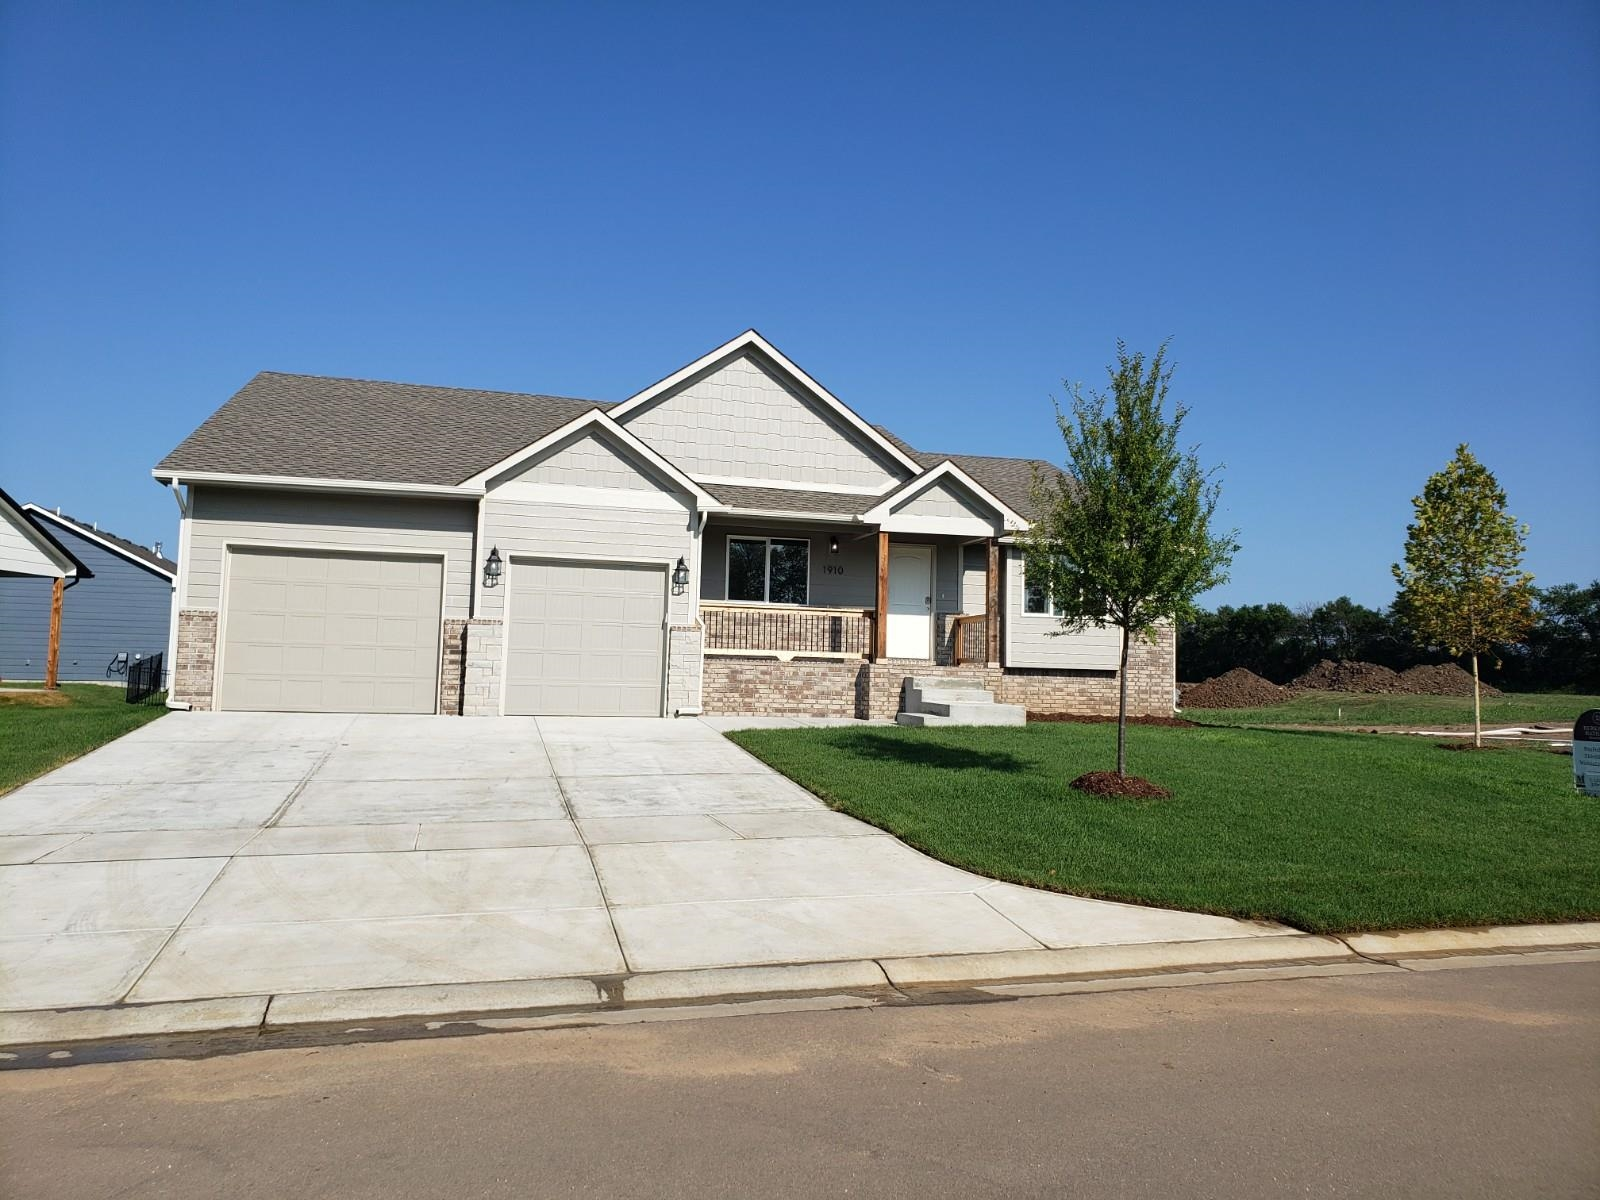 Beautiful new walk-out walk-up ranch in Whispering Lakes, backs up to water with a tandem 3 1/2 garage that could fit a boat and trailer, or room for a shop. Granite or quartz on all counter tops, open floor plan, hidden walk-in pantry, basement wet bar, and a covered deck over the walk-out patio. Master bath has a shower room with 2 shower walls and a full wall of storage! Low traffic in a quiet and secluded neighborhood with saltwater pool, nature tails, three lakes to enjoy, great fishing, and close to HWY 96 or Andover Dillon's Marketplace and YMCA. Wichita Schools. Will be completed in November.